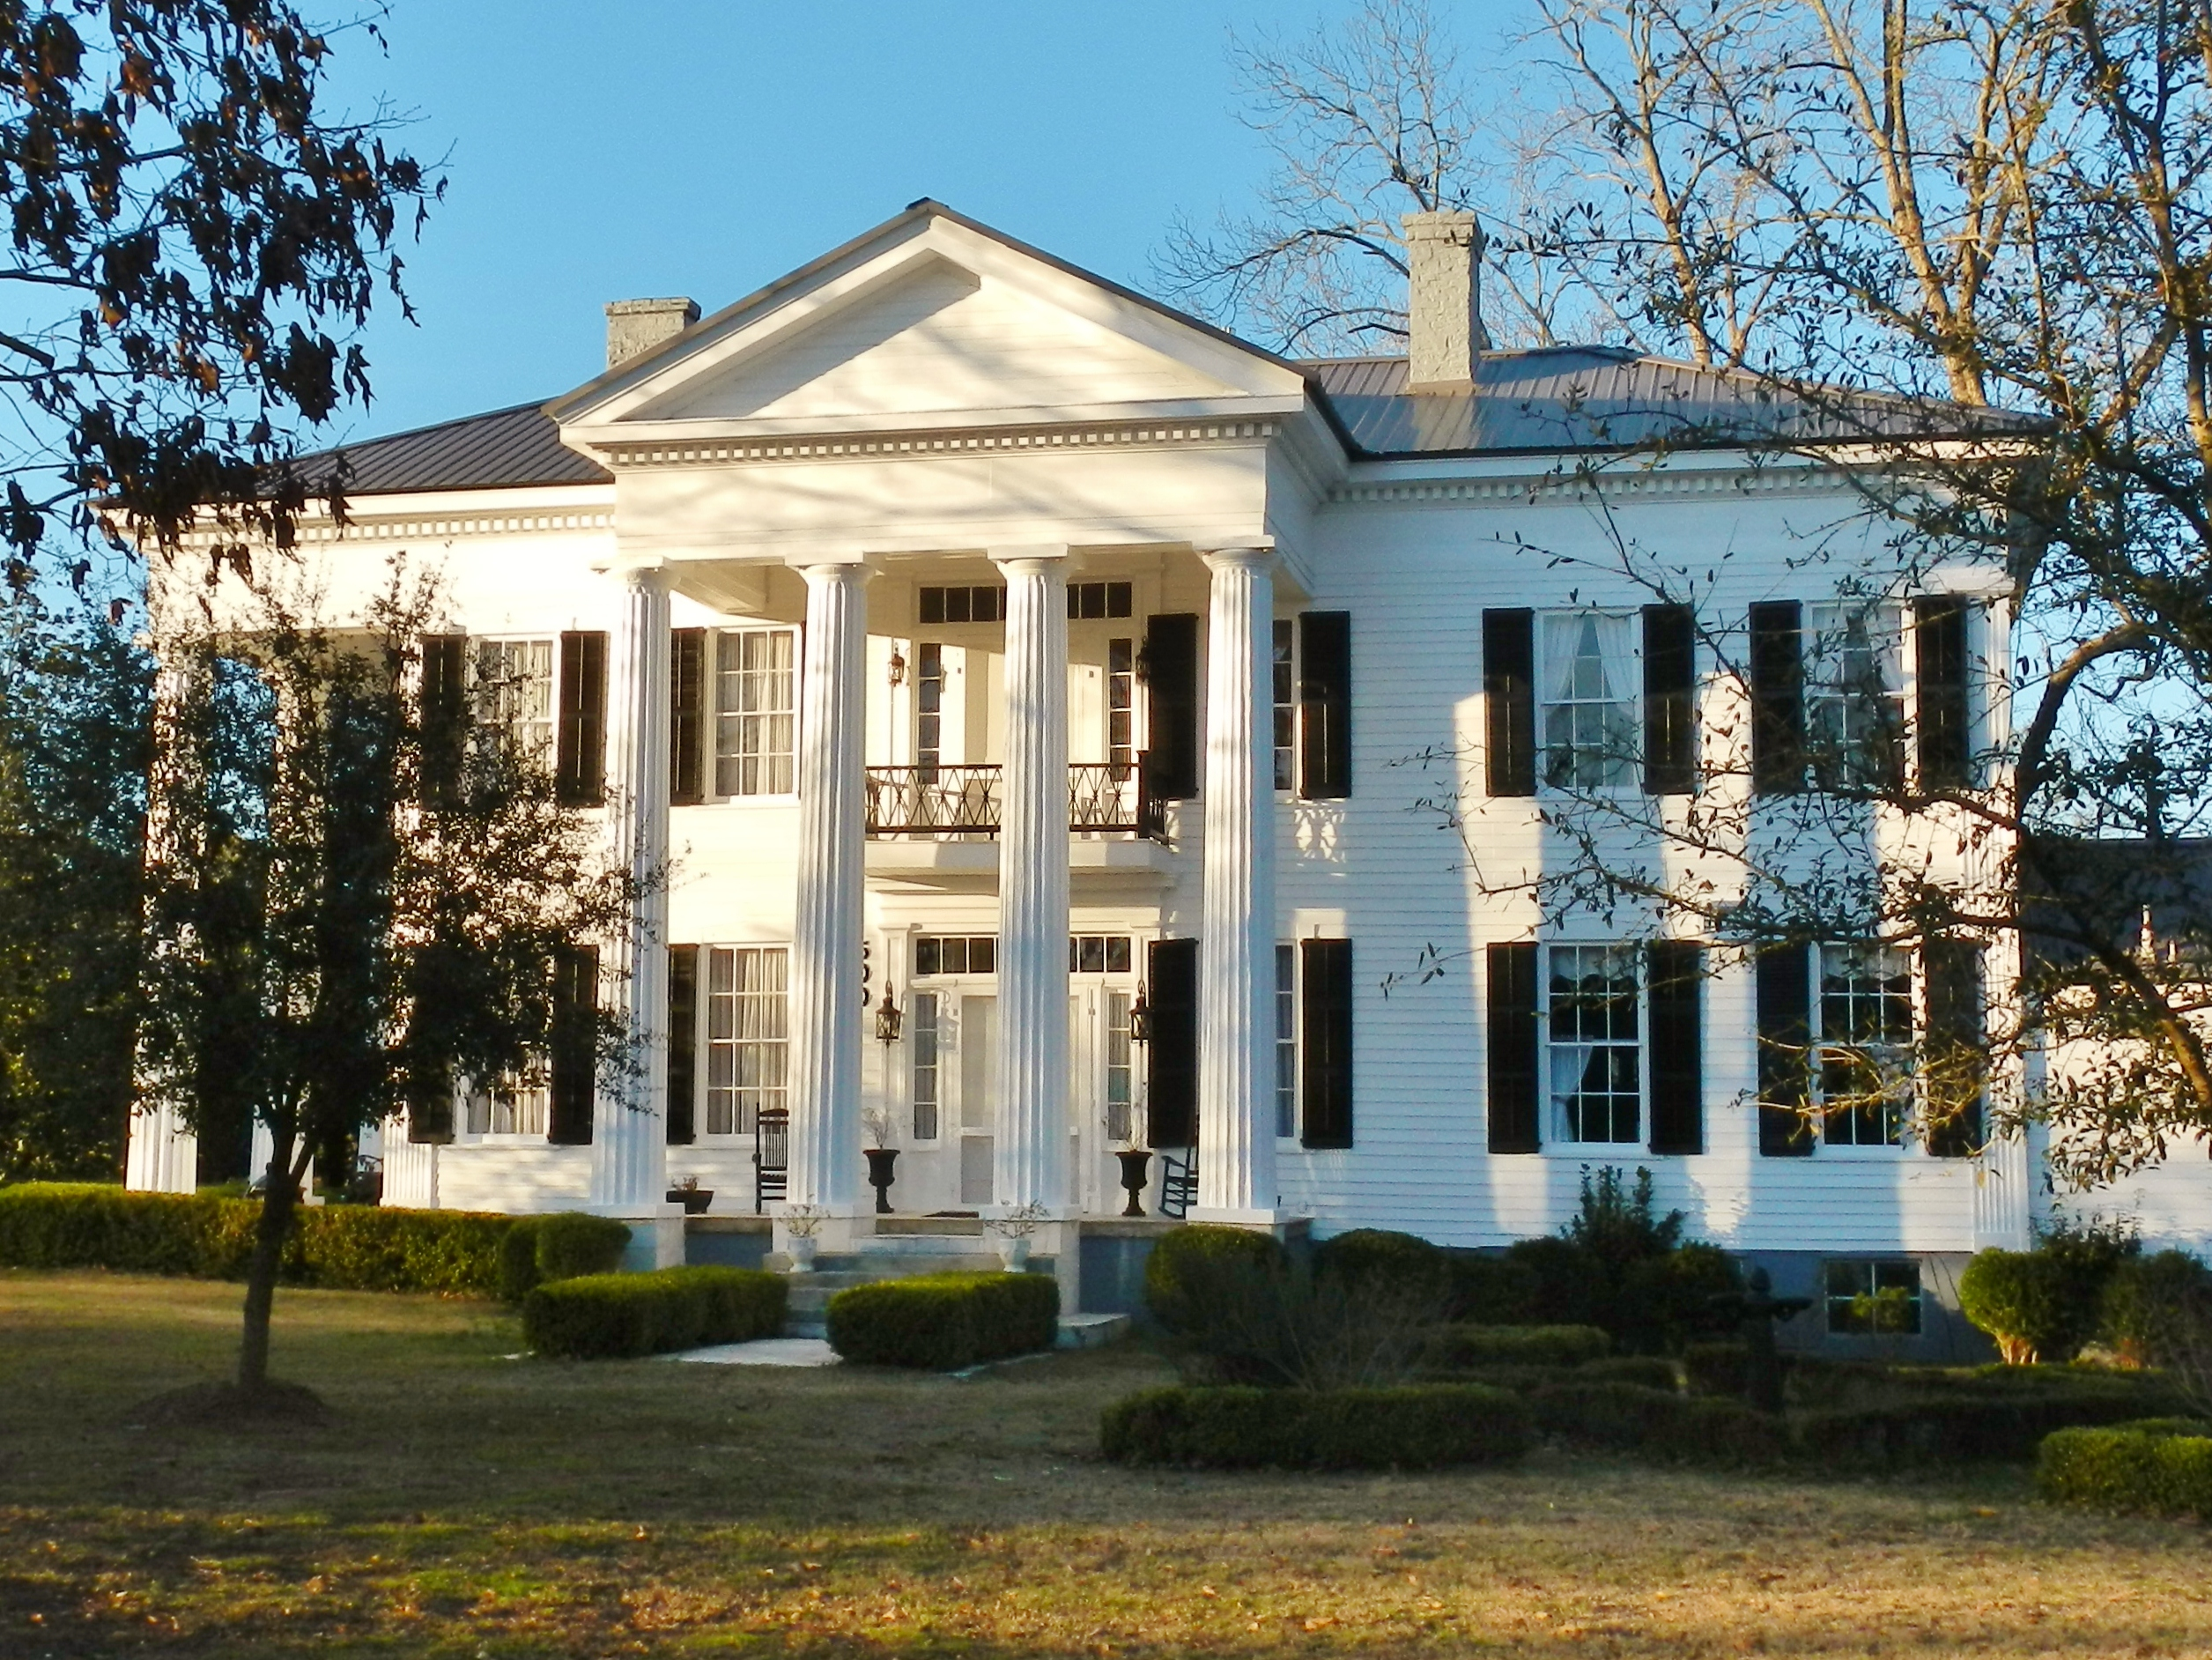 File:The Pillars 1856 Lowndesboro Alabama Historic District.JPG ...